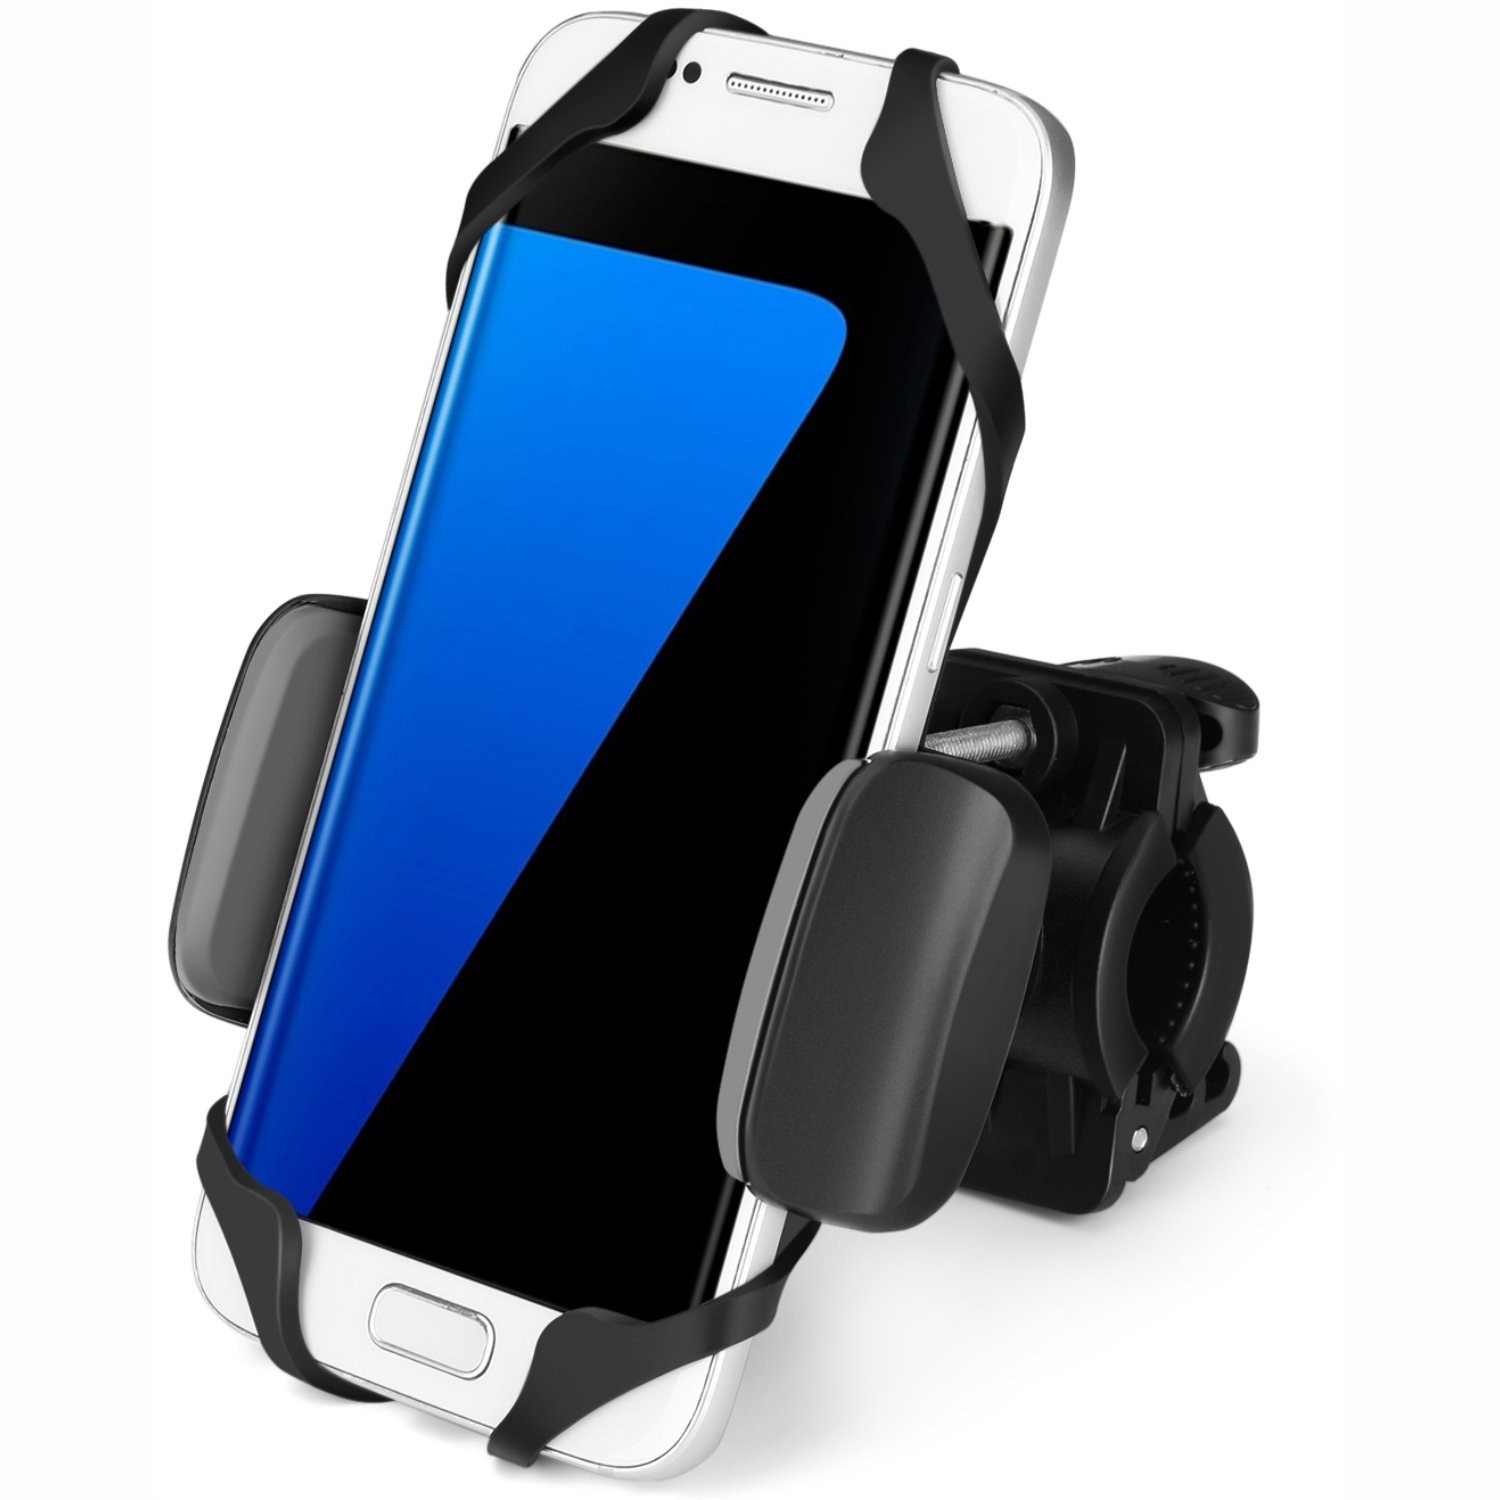 Handlebar Cradle Clamp for Bicycle Motorcycle Smartphone Devices Boating GPS Fits iPhone 7 Plus Samsung 360 Degrees Rotatable Rubber Strap Flexzion Universal Bike Phone Mount Holder Adjustable